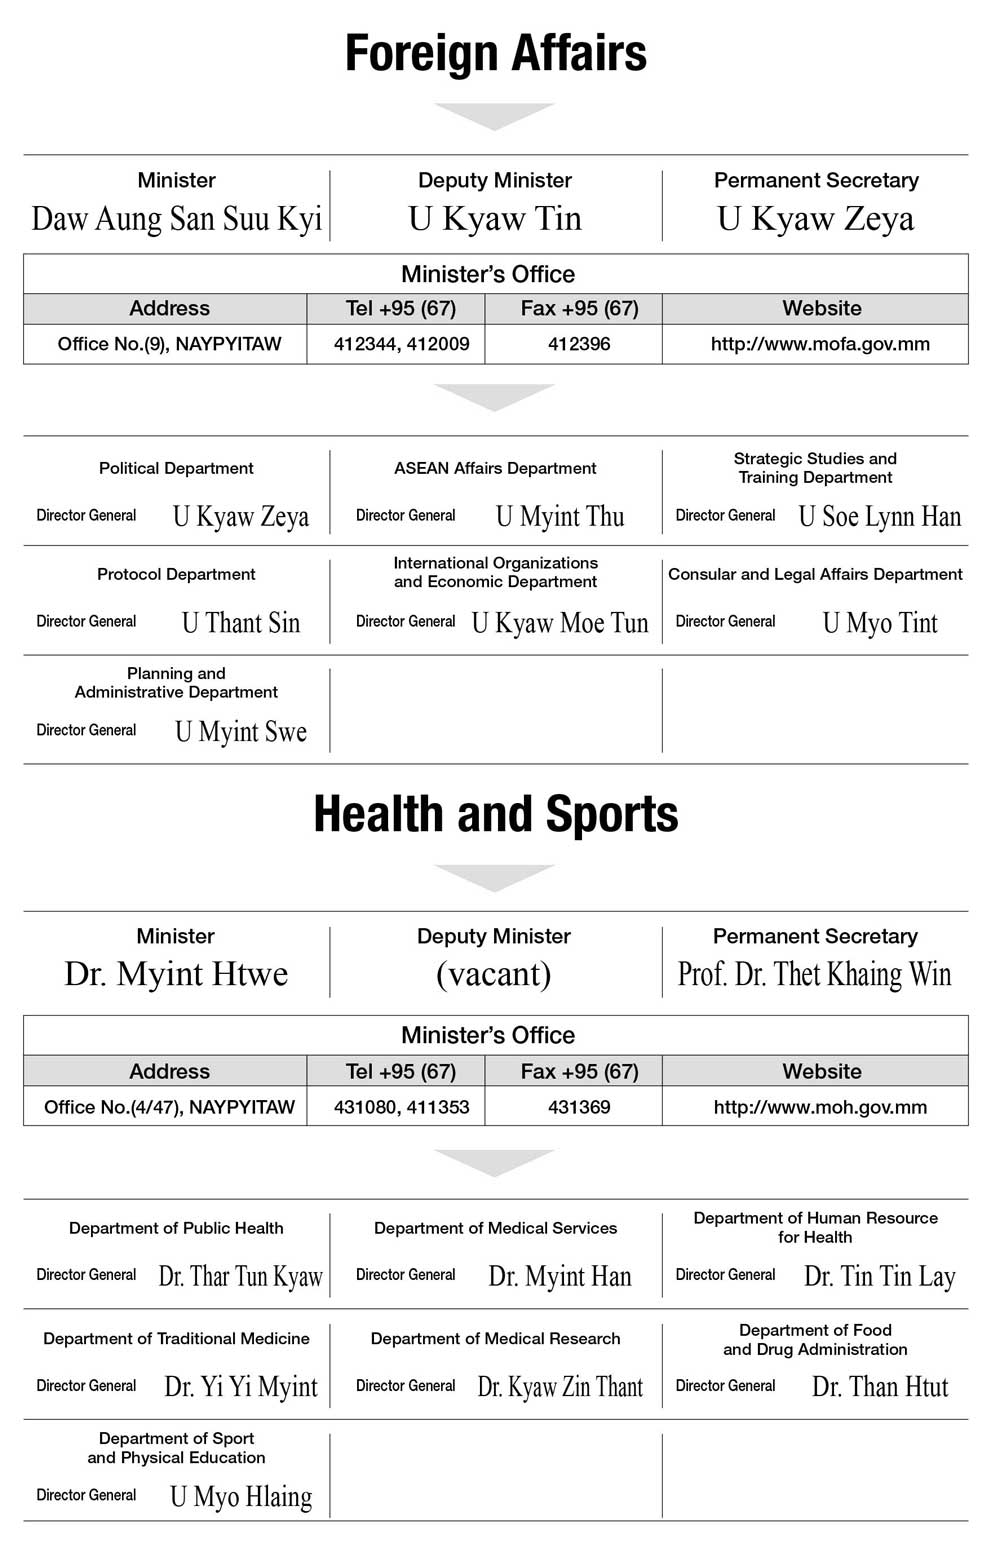 Foreign Affairs / Health and Sports